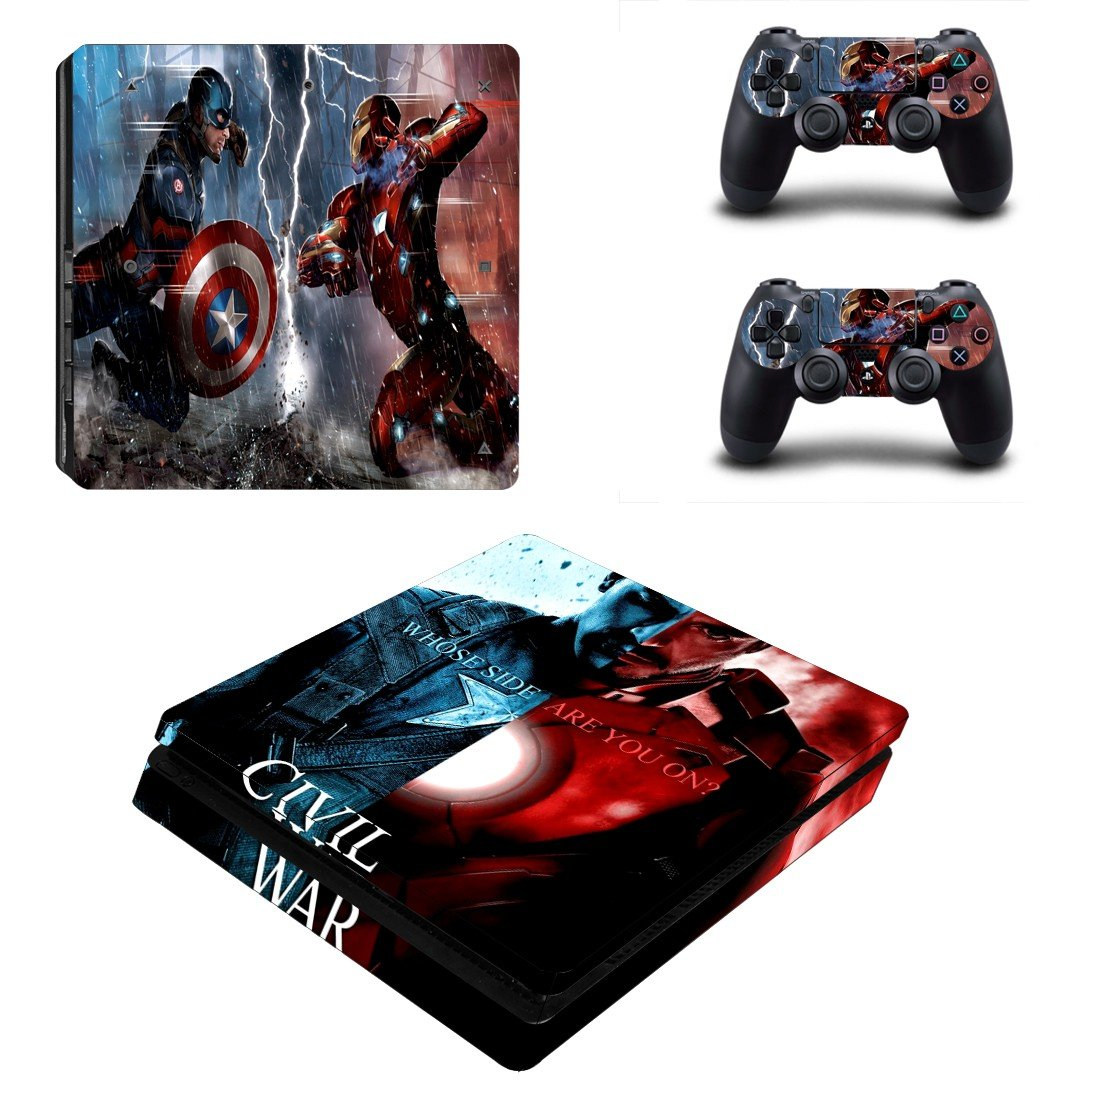 Captain America Civil war Play Station 4 slim skin decal for console and 2 controllers